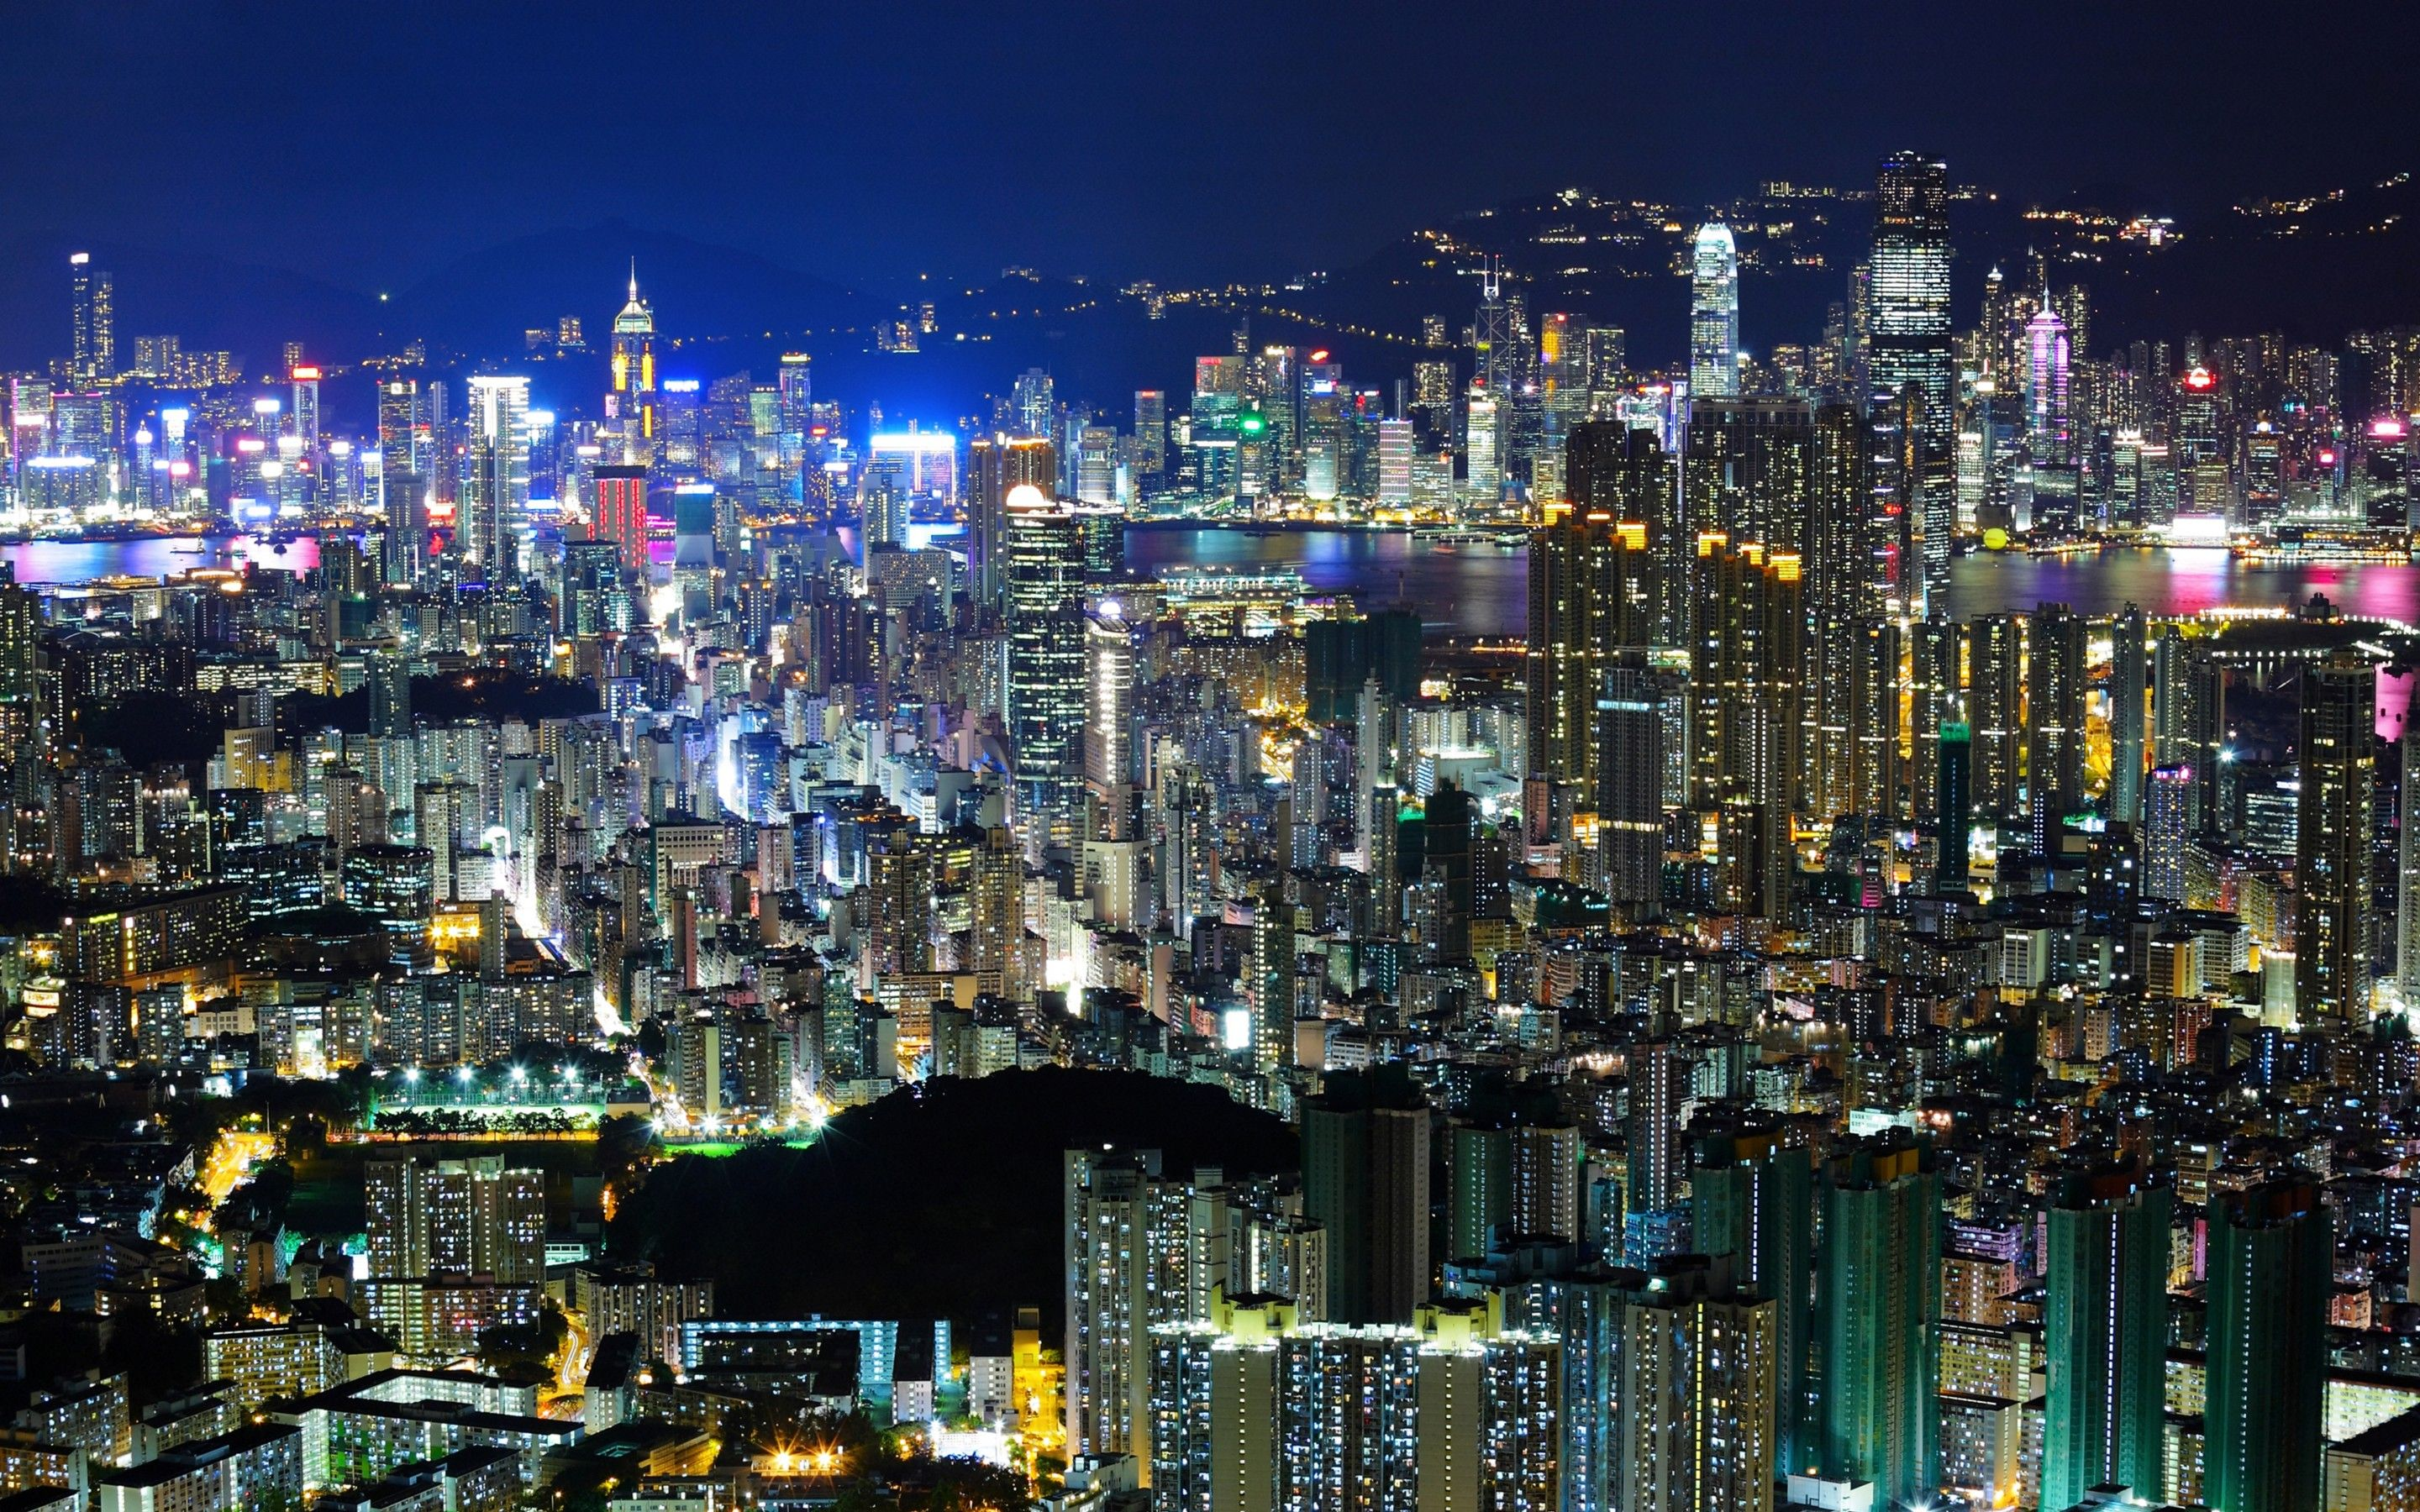 hong kong, Hong Kong, China, Asia, city, evening, night, light, home, Skyscrapers, building, high-rise, wallpapers , Pc backgrounds, free photos - HD wallpaper desktop backgrounds